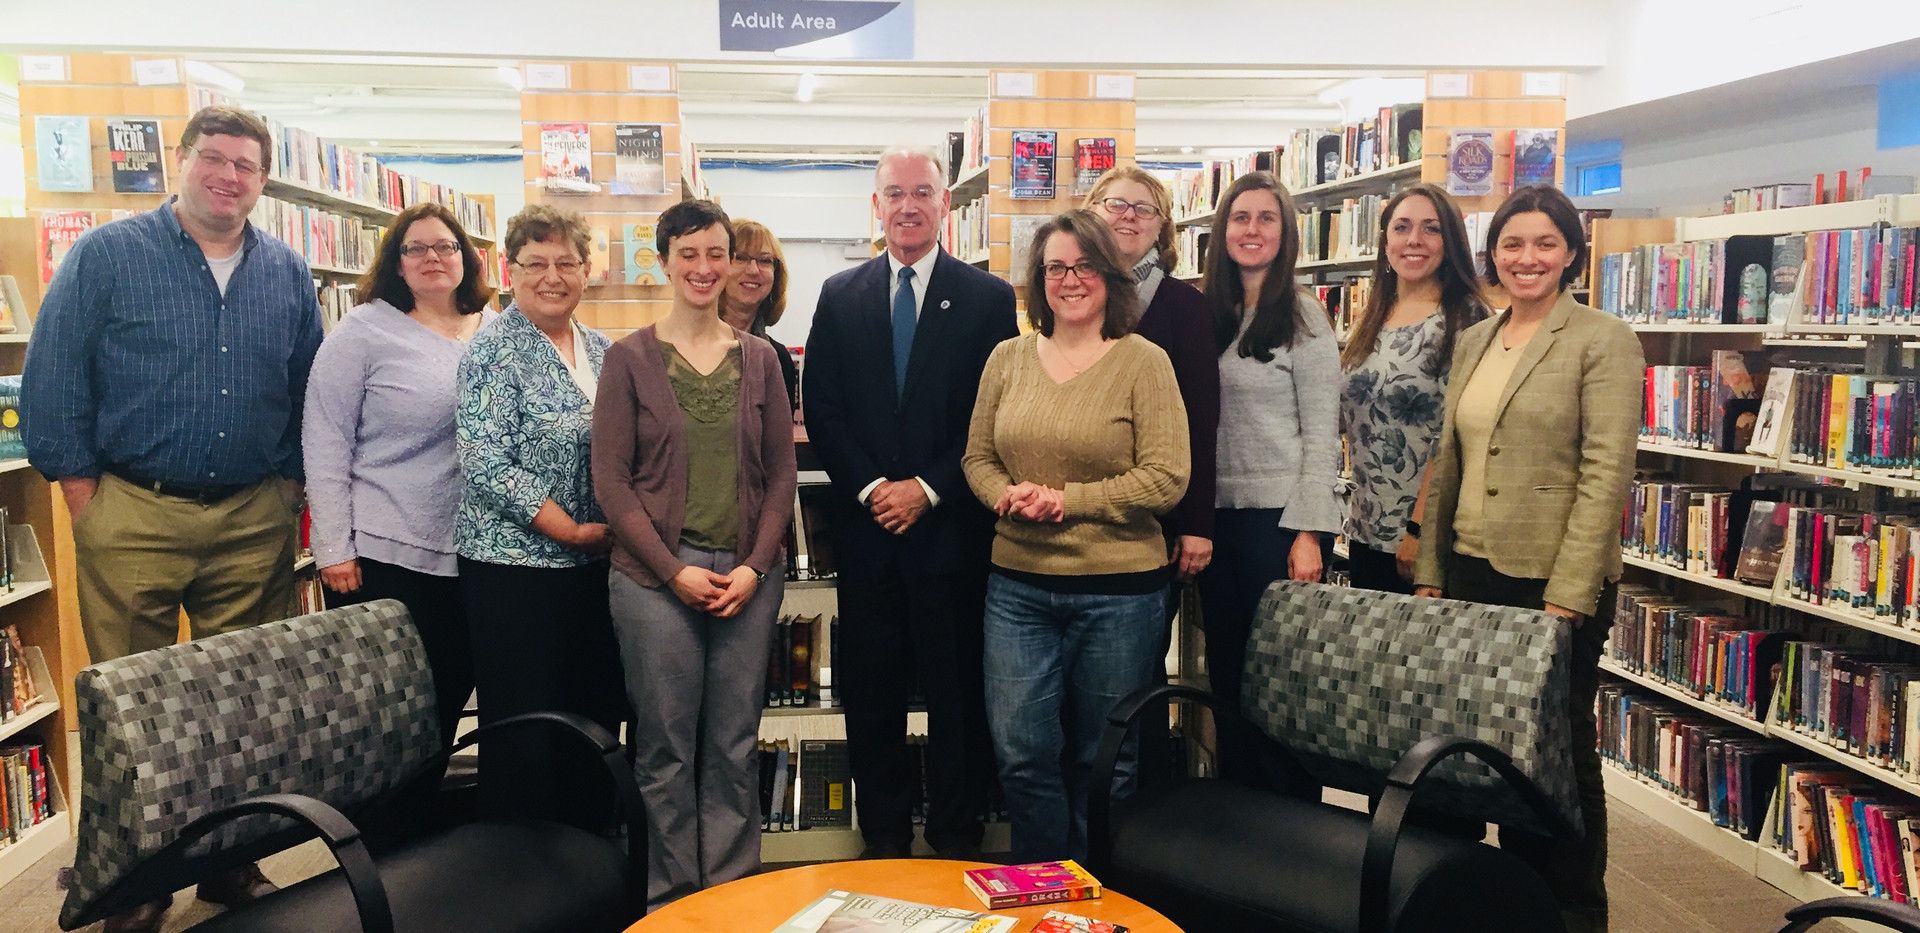 Met with Rep. Brian Murray, Co-Chair of the House Library Caucus  March 19, 2018